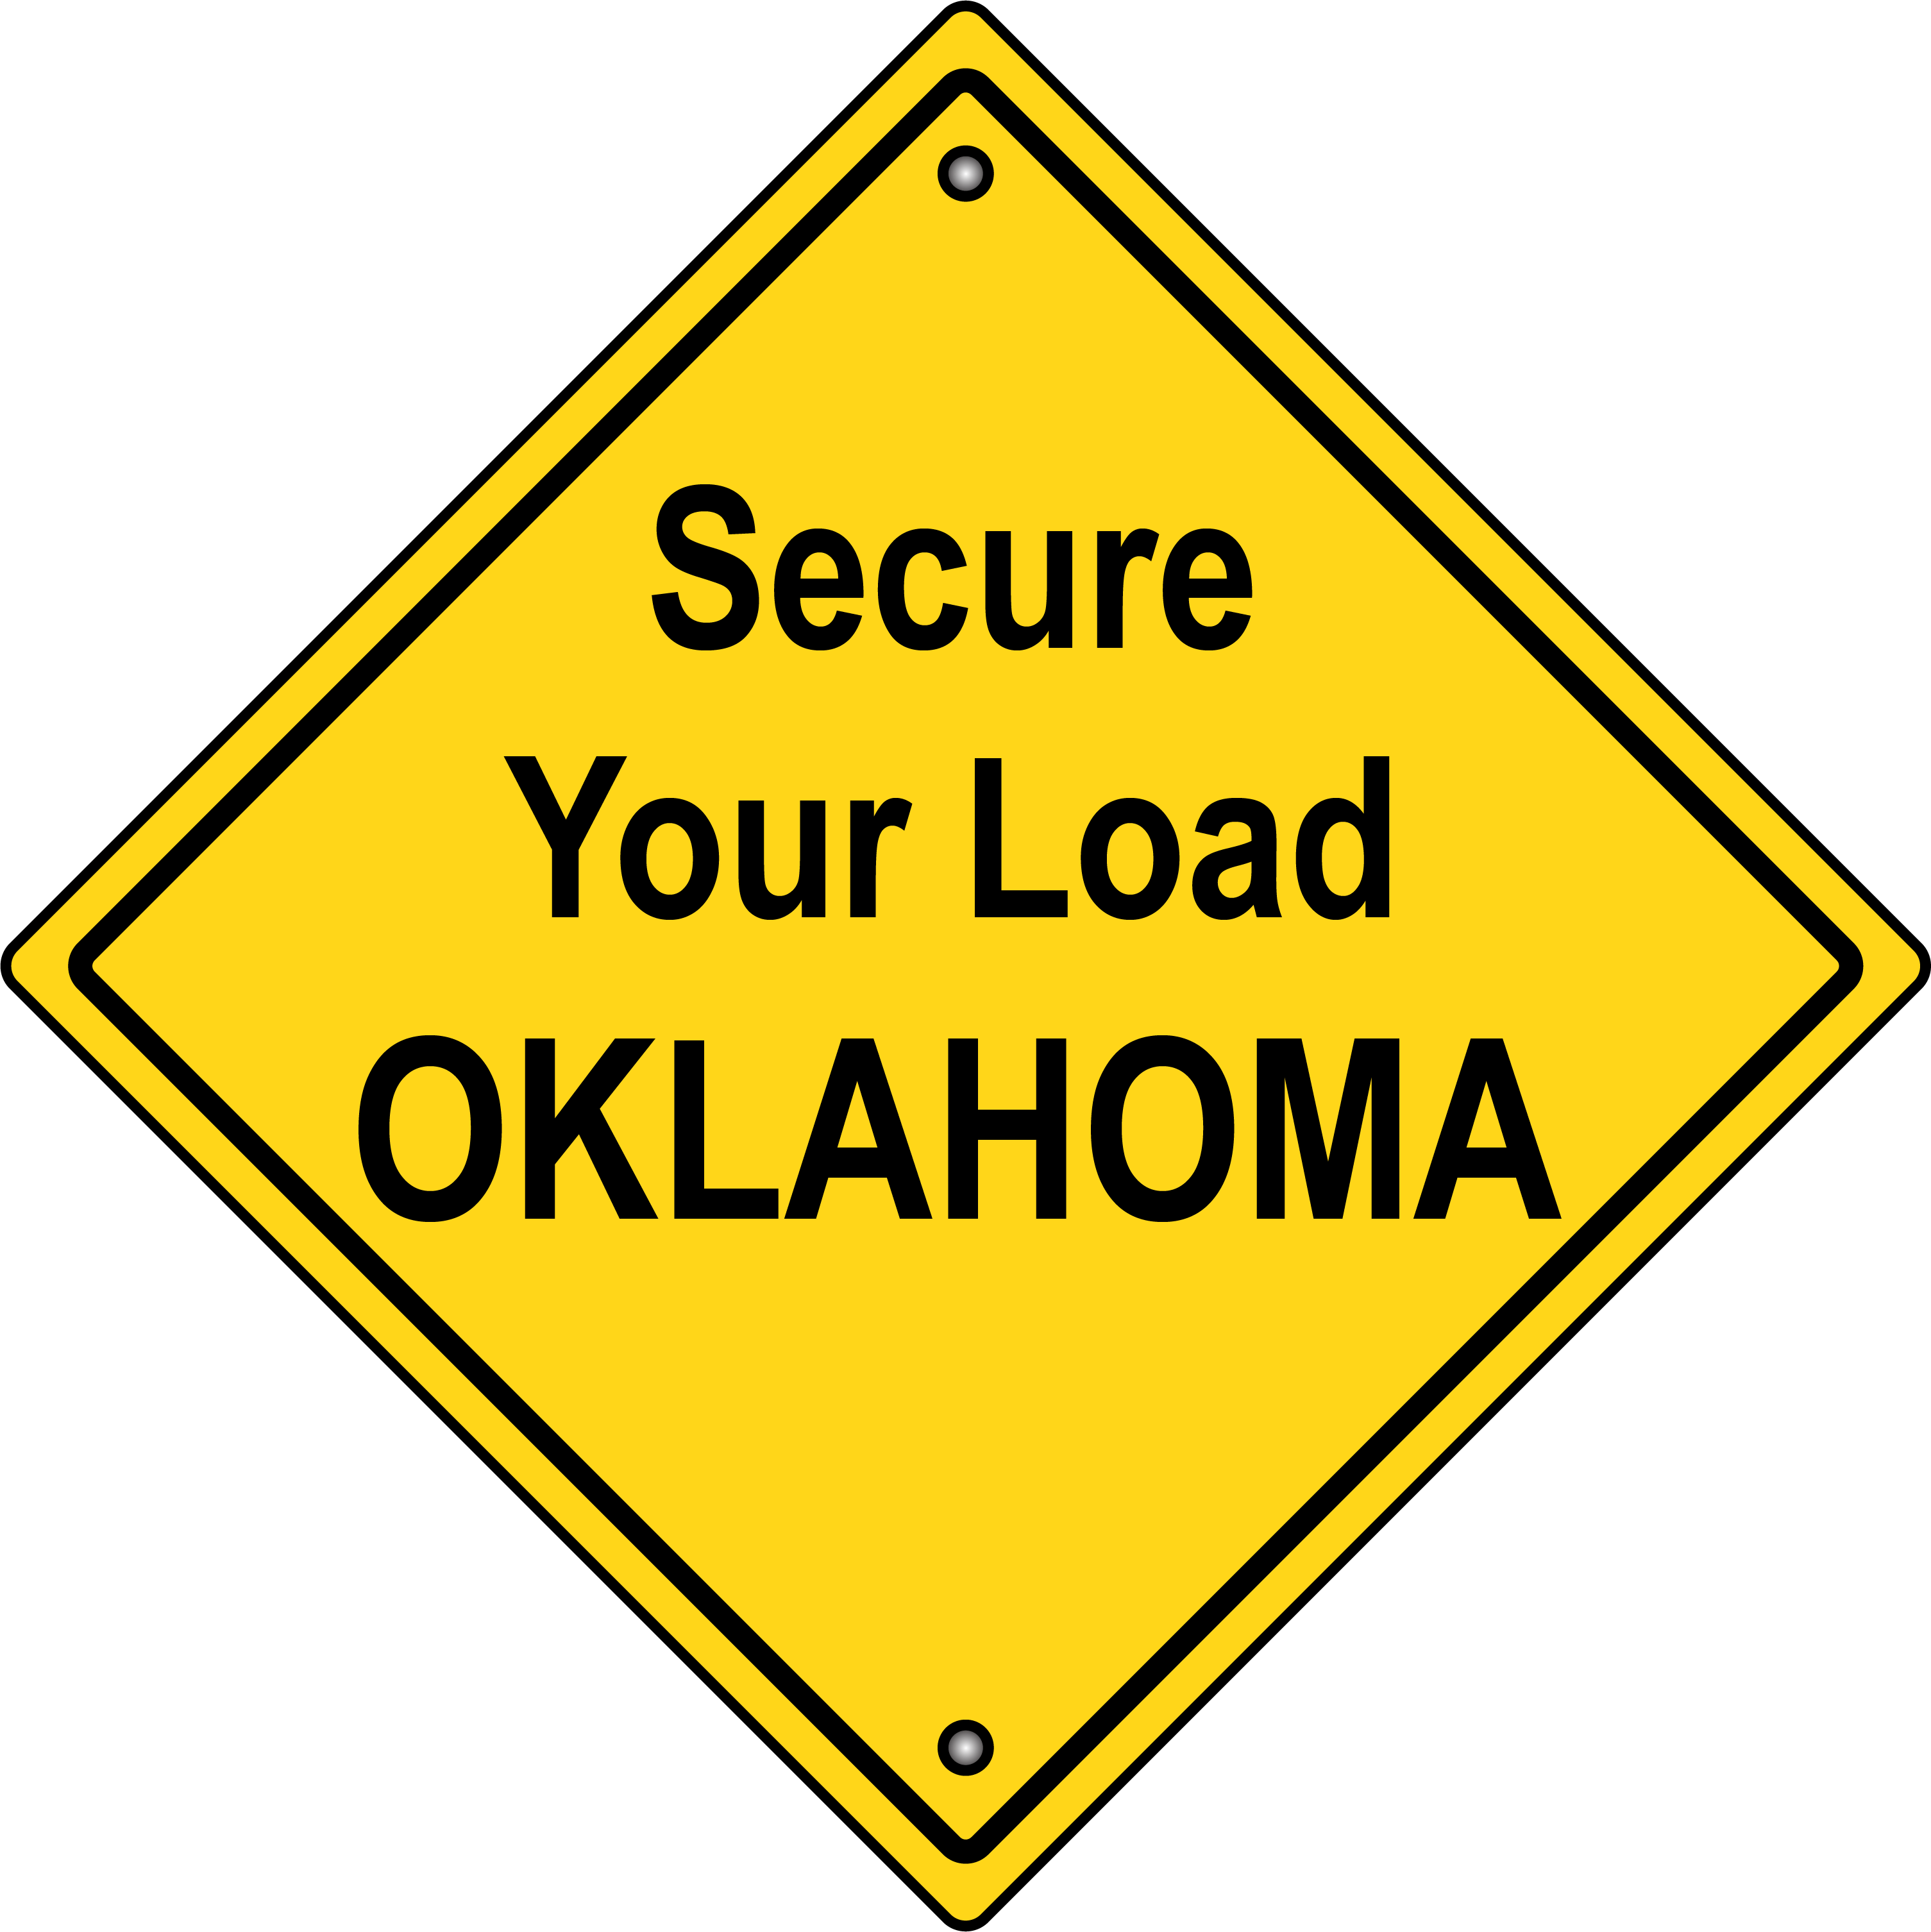 How Secure is Your Load?